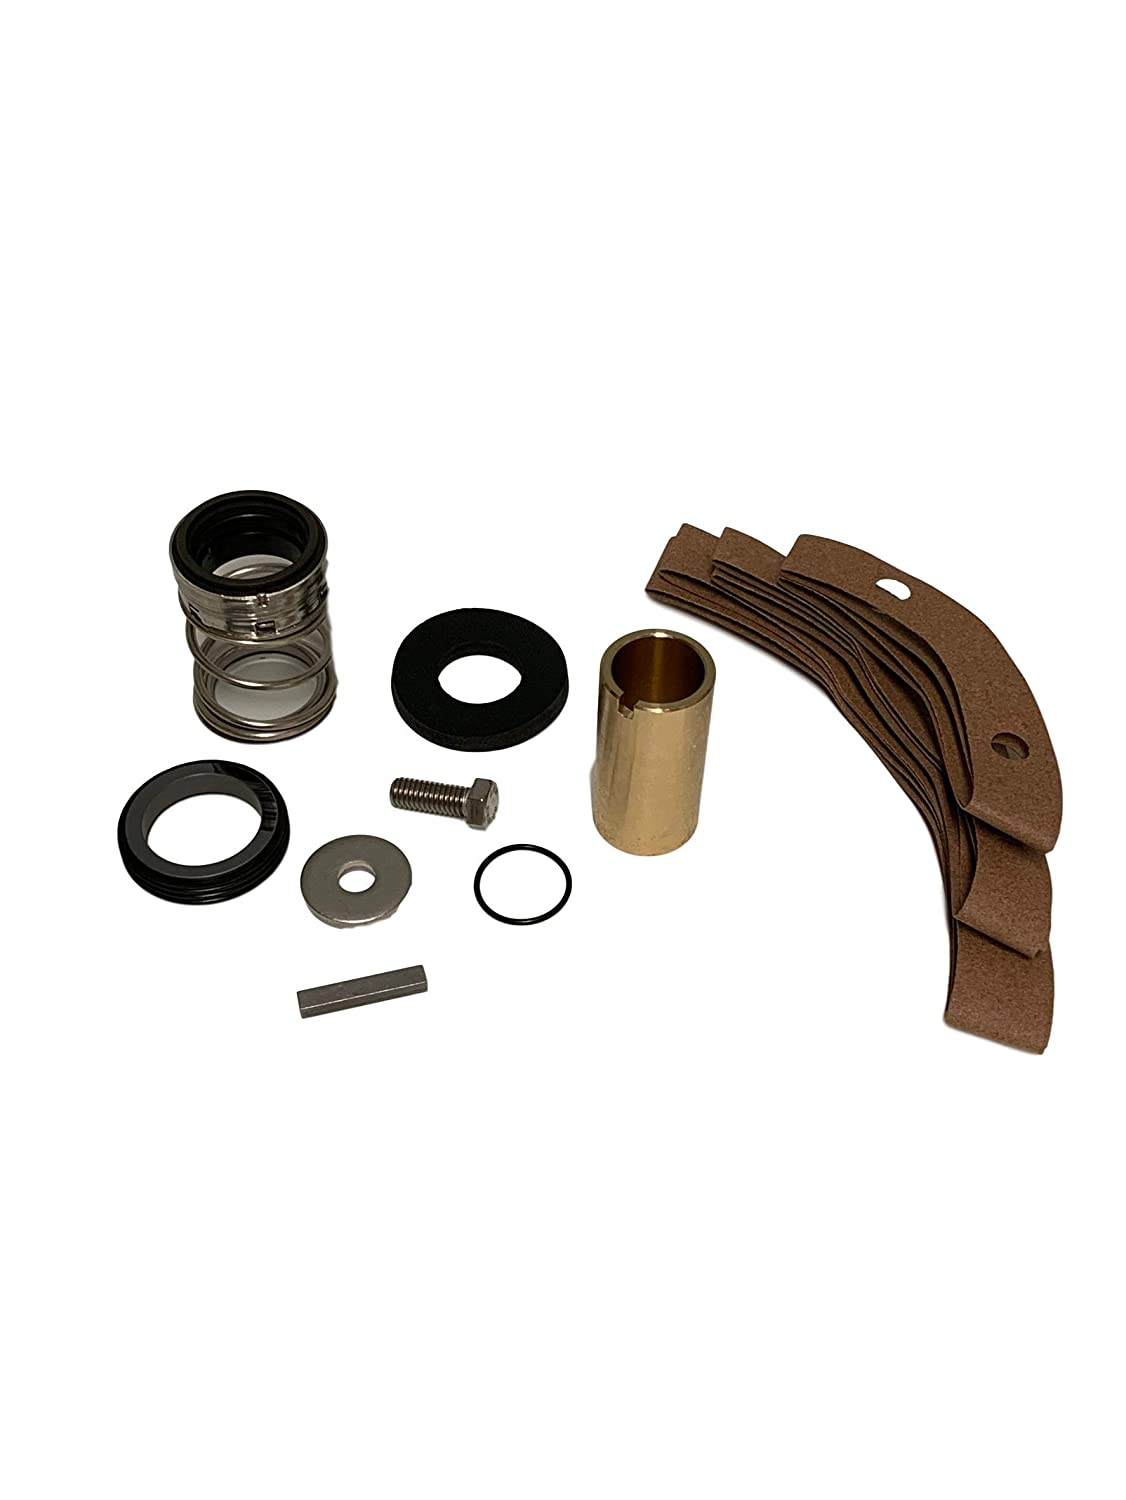 Mesco Corp Replacement kit for BSE2 Peerless Rare 67% OFF of fixed price C F Series